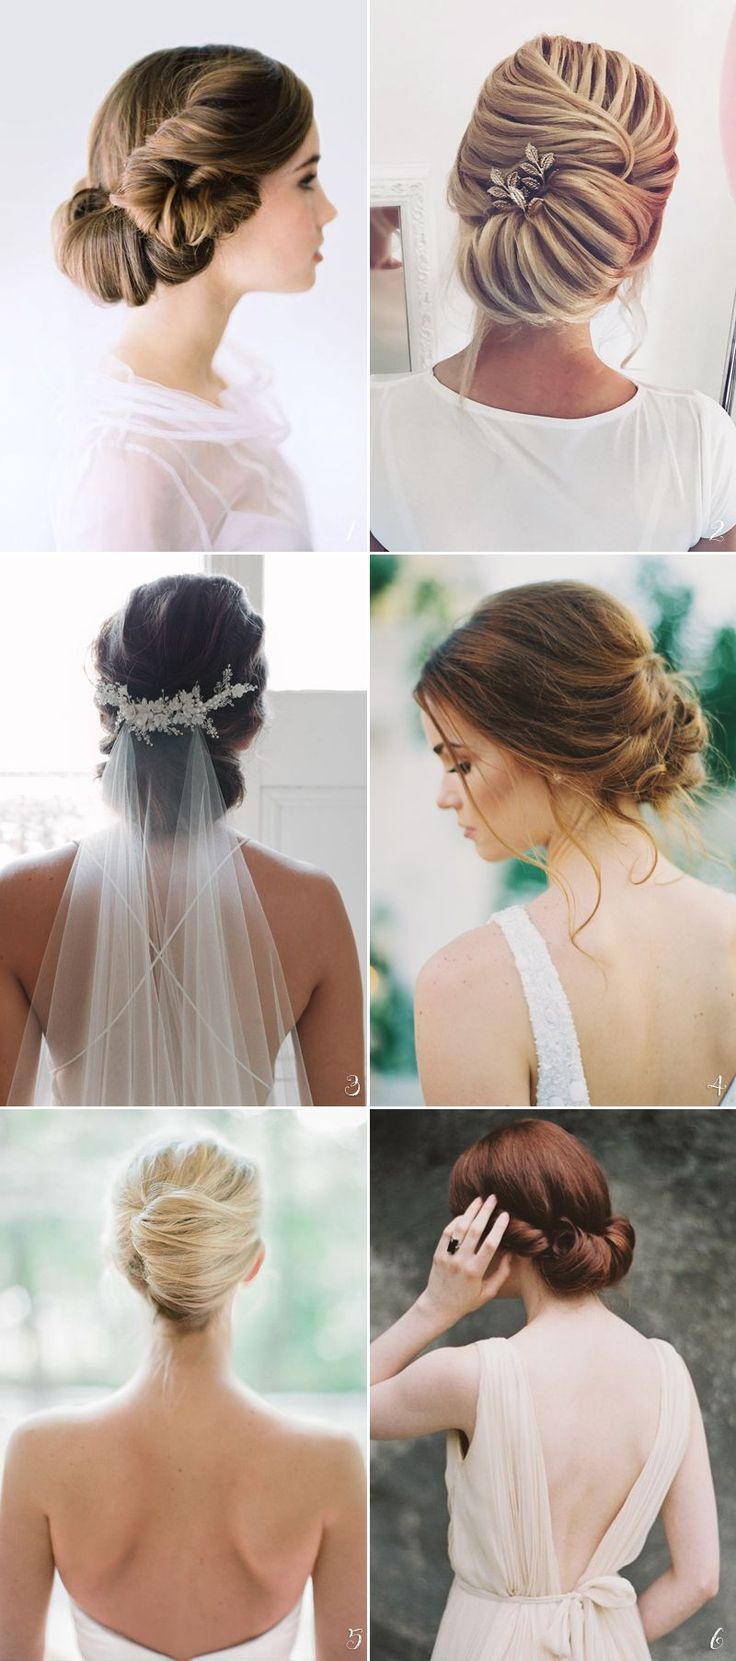 With the weather being less humid, fall brides have a wider range of hairstyles and accessories to consider. From classic up-dos, statement braids, to loose curls, fall bridal hairstyles are romantic and elegant. Autumn-inspiared floral crowns and vintage golden accessories are perfect adornments to completing your gorgeous look. Let our collection of beautiful fall wedding hairstyle trends get you inspired!